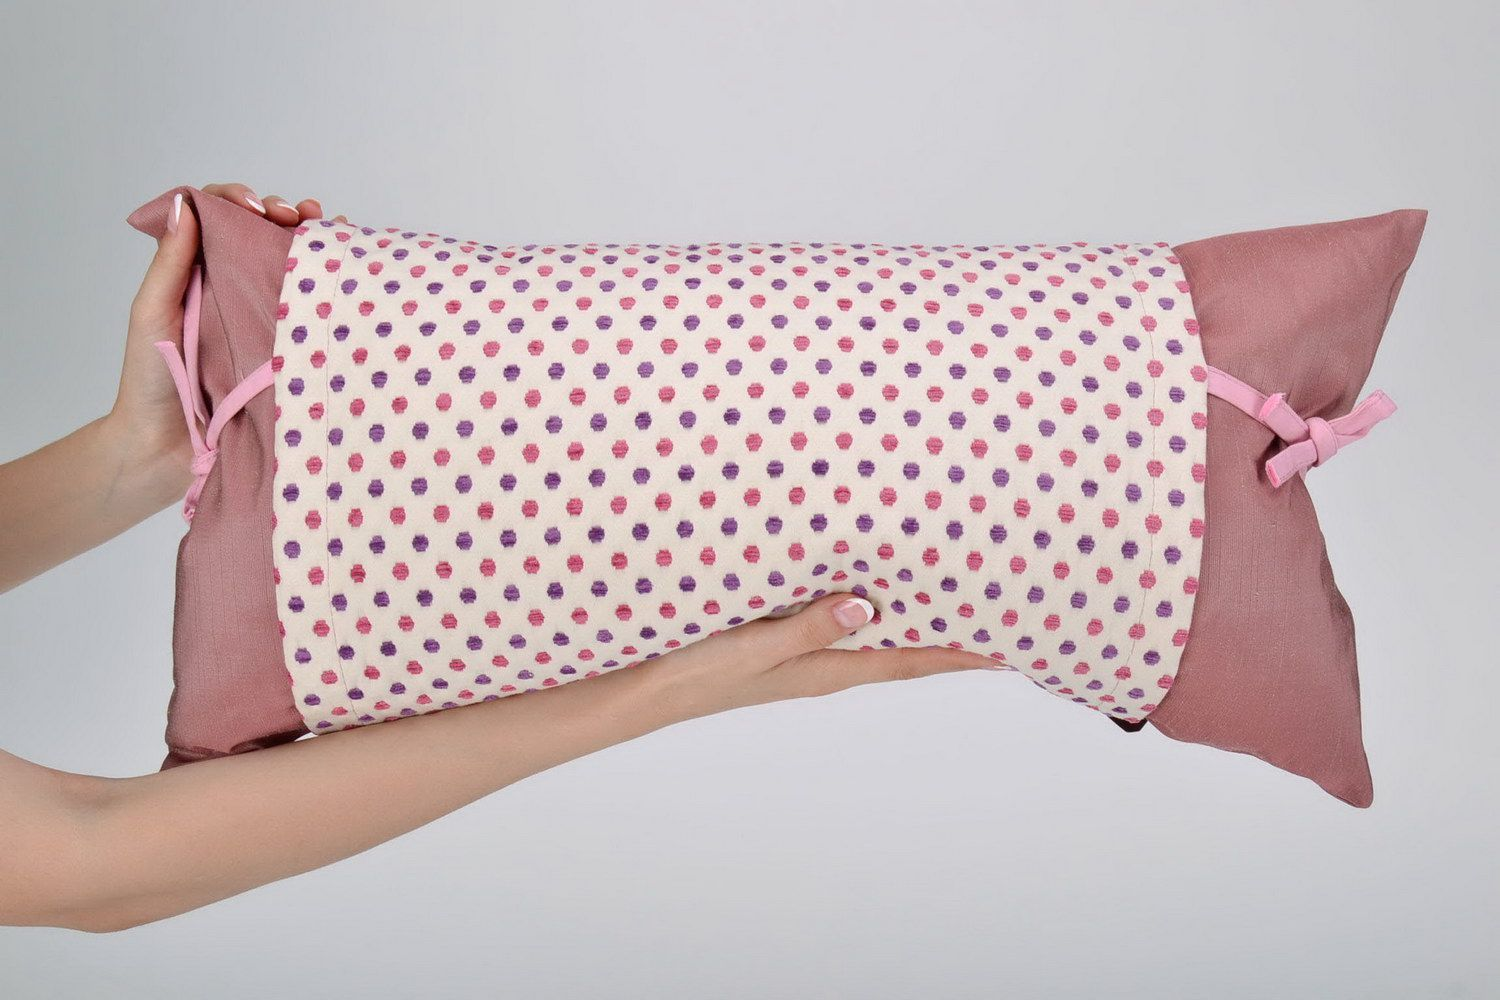 textiles and carpets Handmade decorative pillow made of organza - MADEheart.com